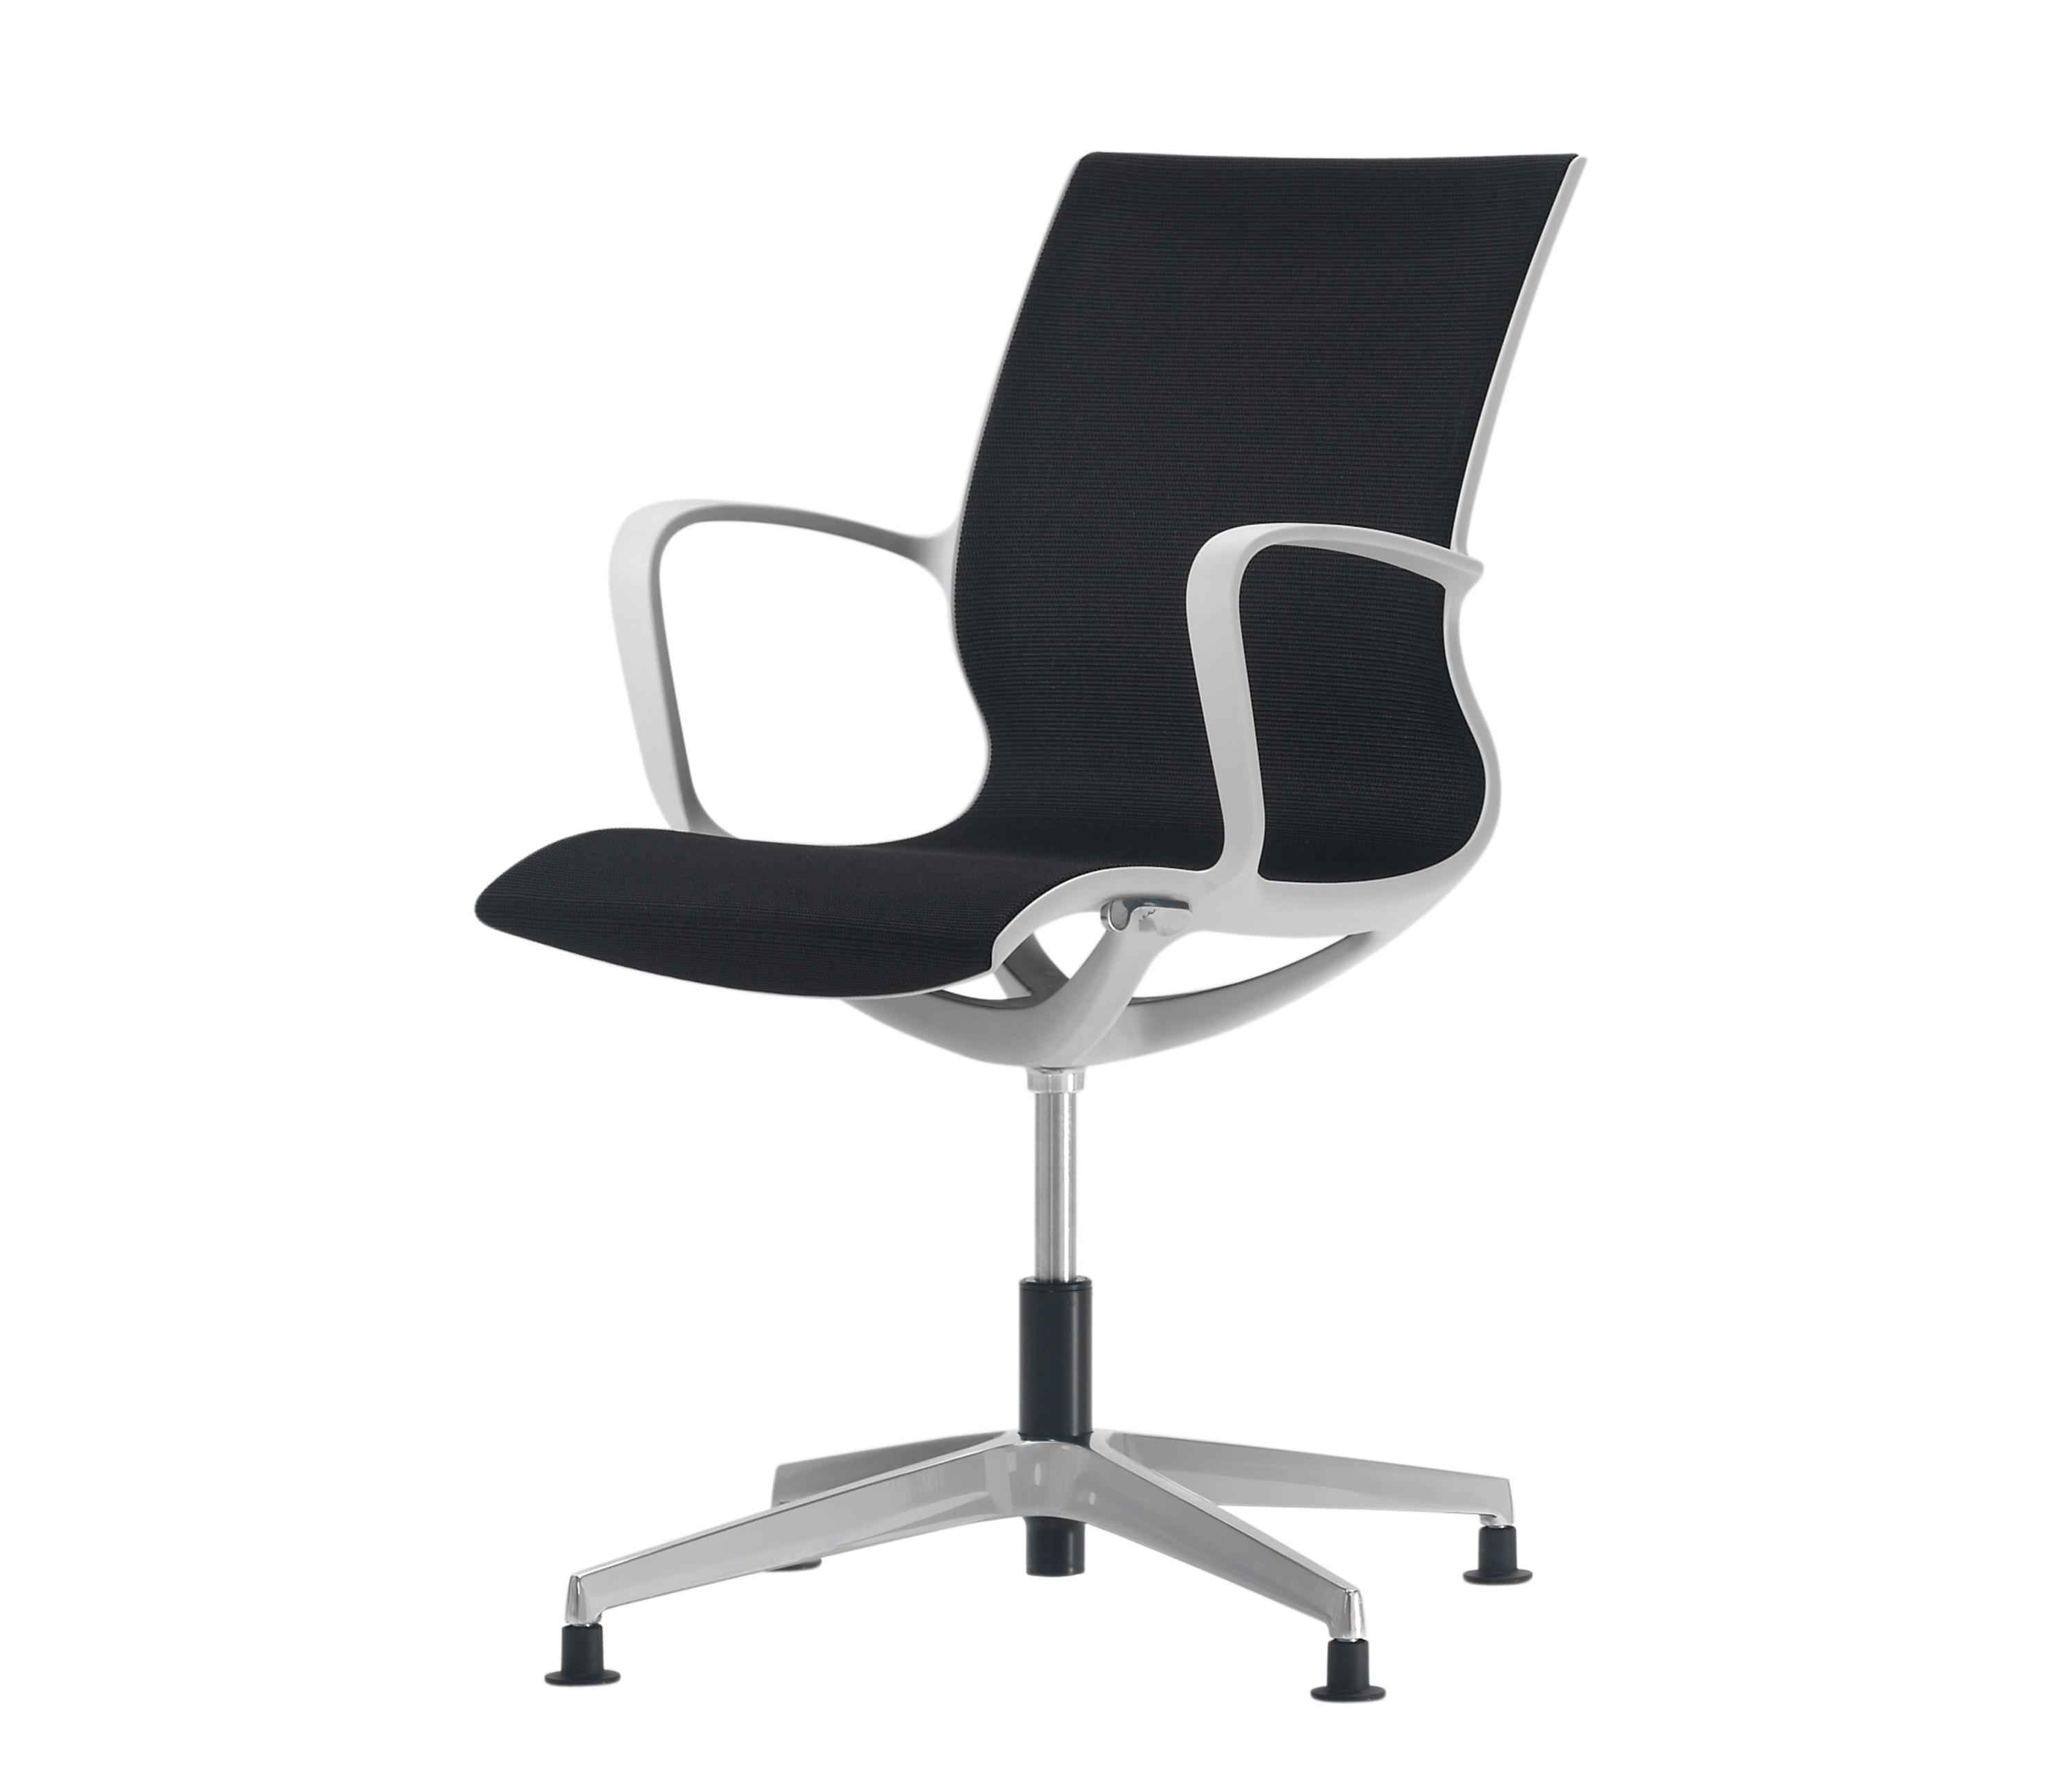 ZERO Conference chairs from Inclass